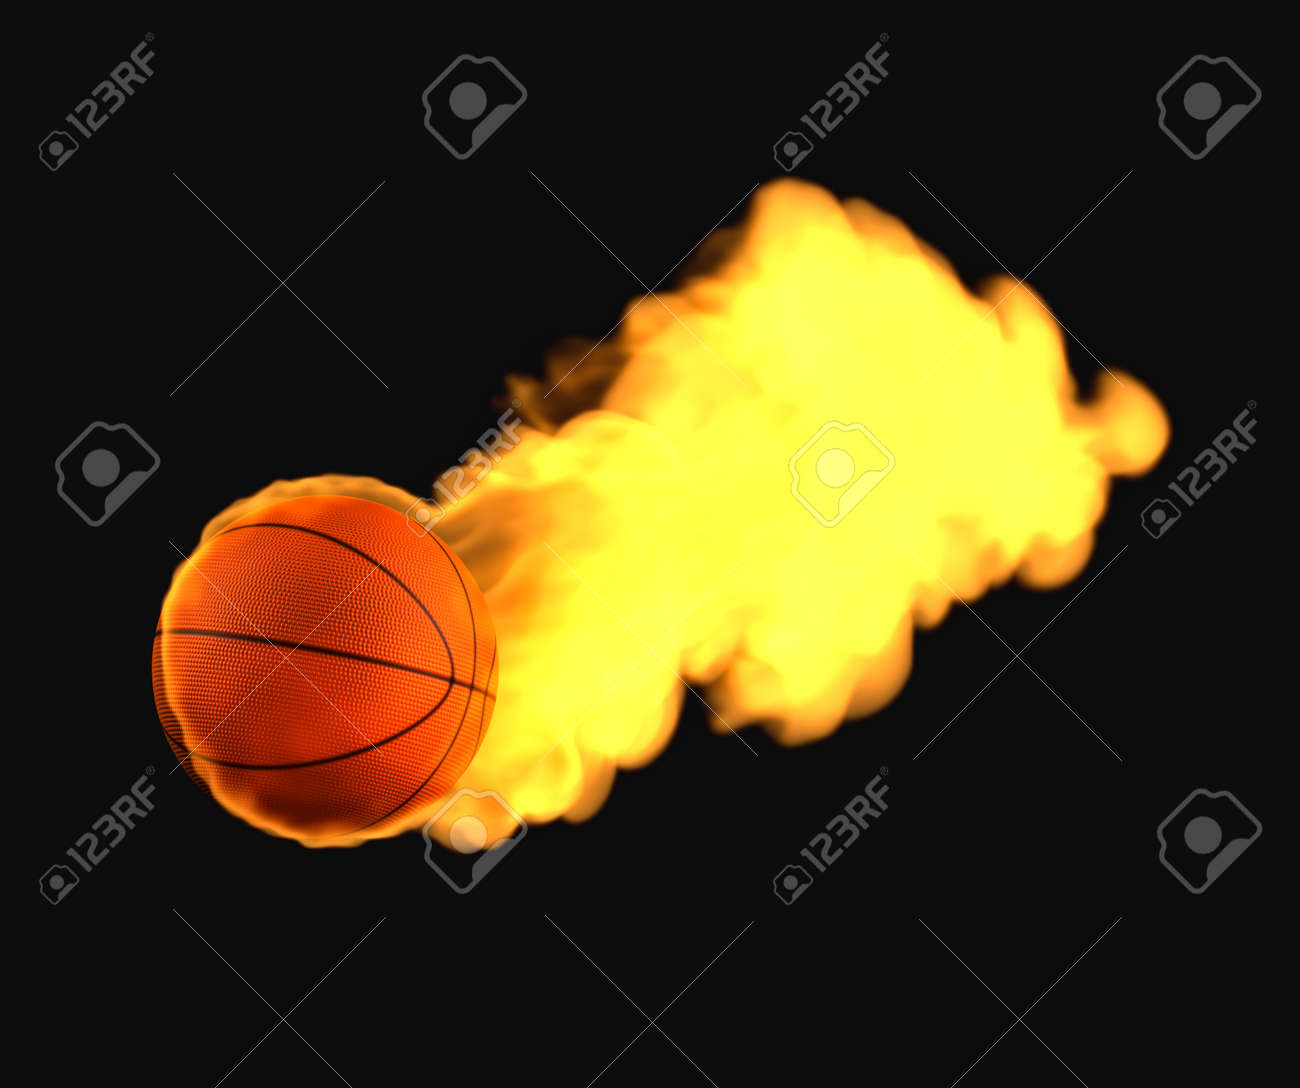 Flying basketball on fire - 14723180